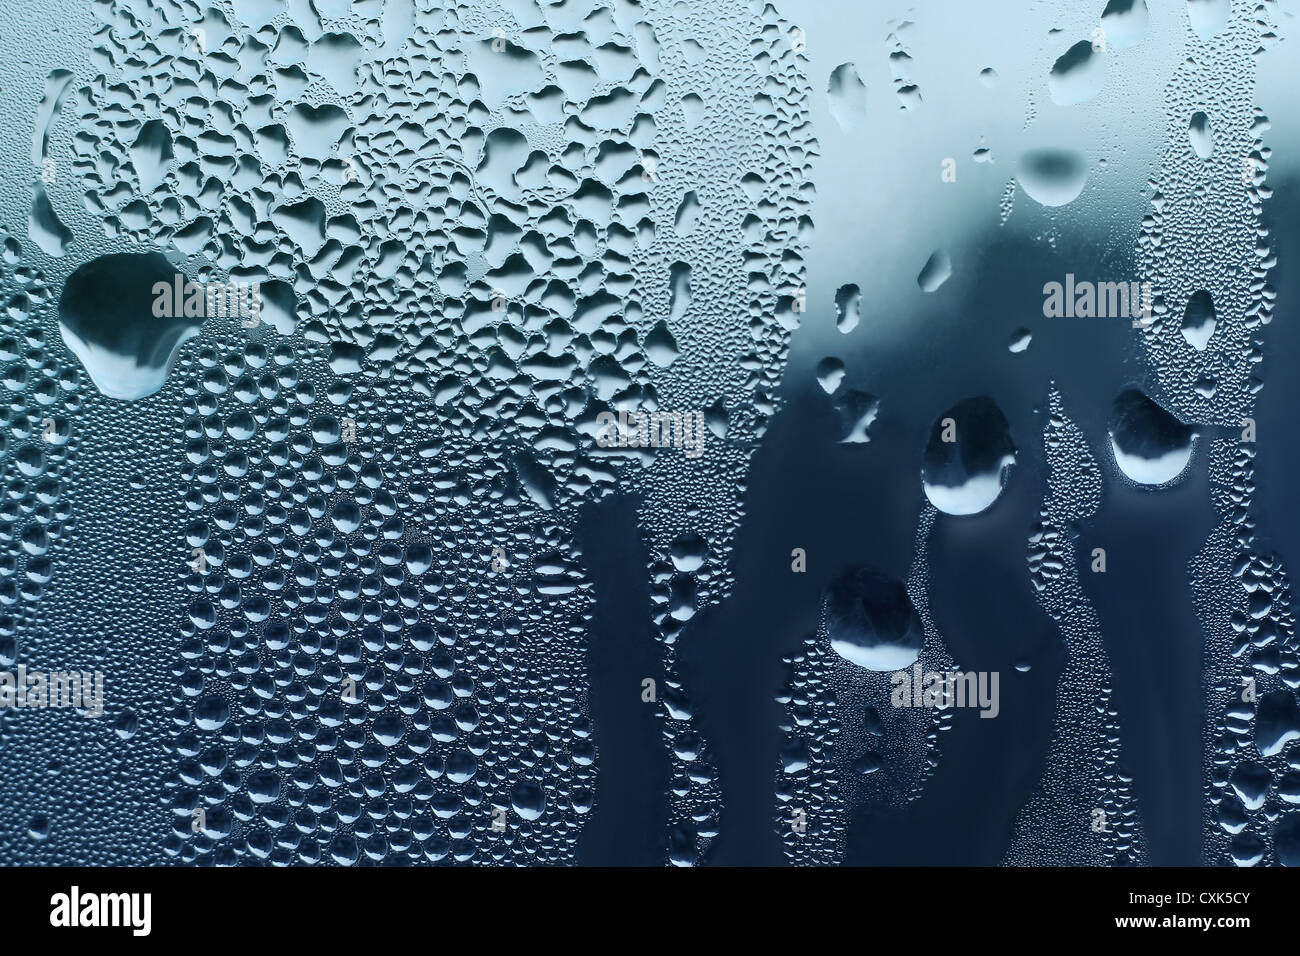 Texture naturelle Water drop Photo Stock